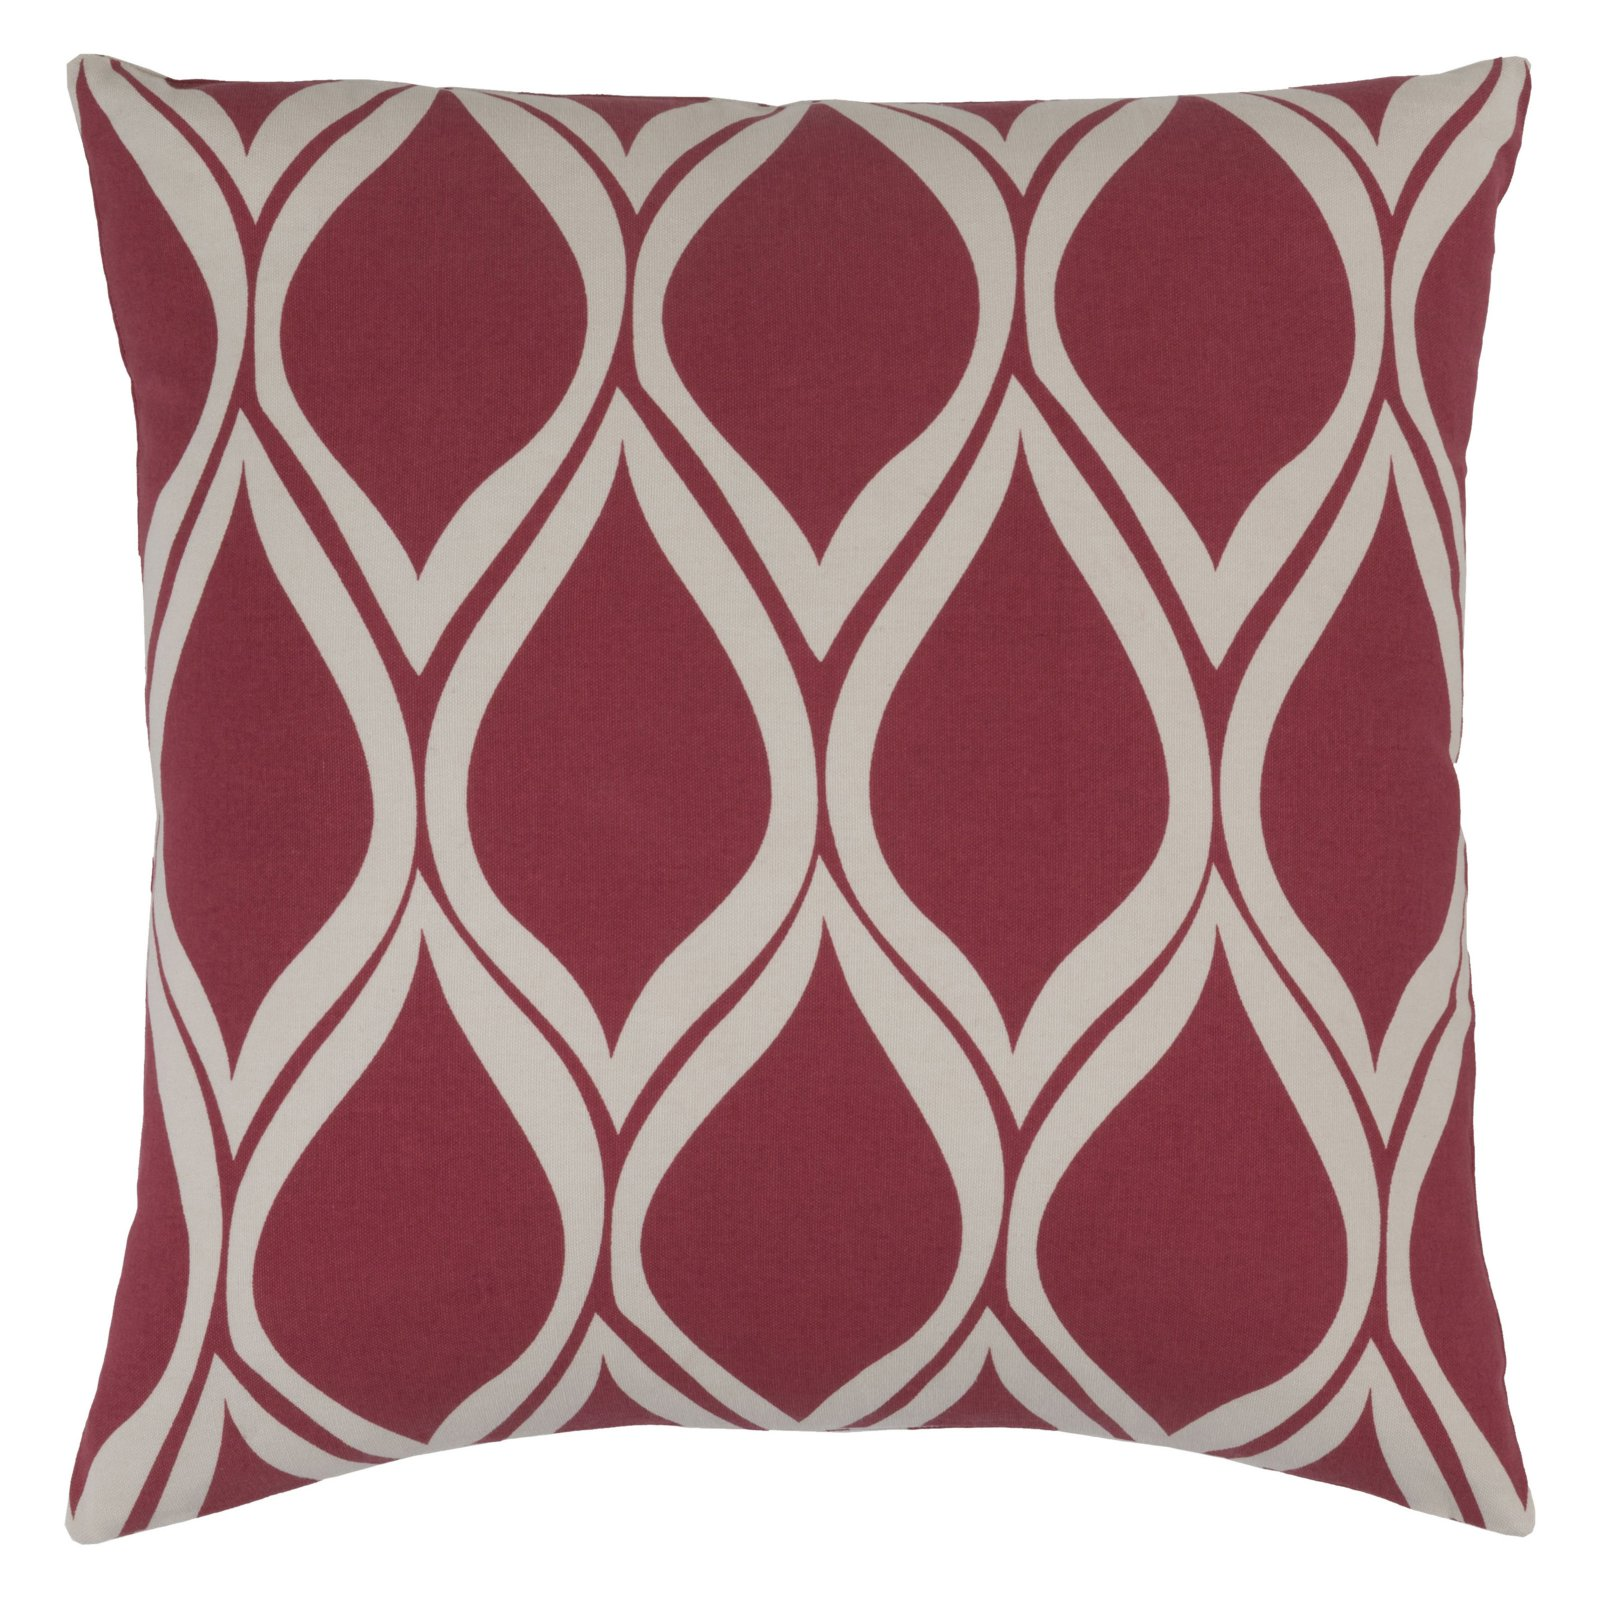 Surya Somerset IV Decorative Throw Pillow